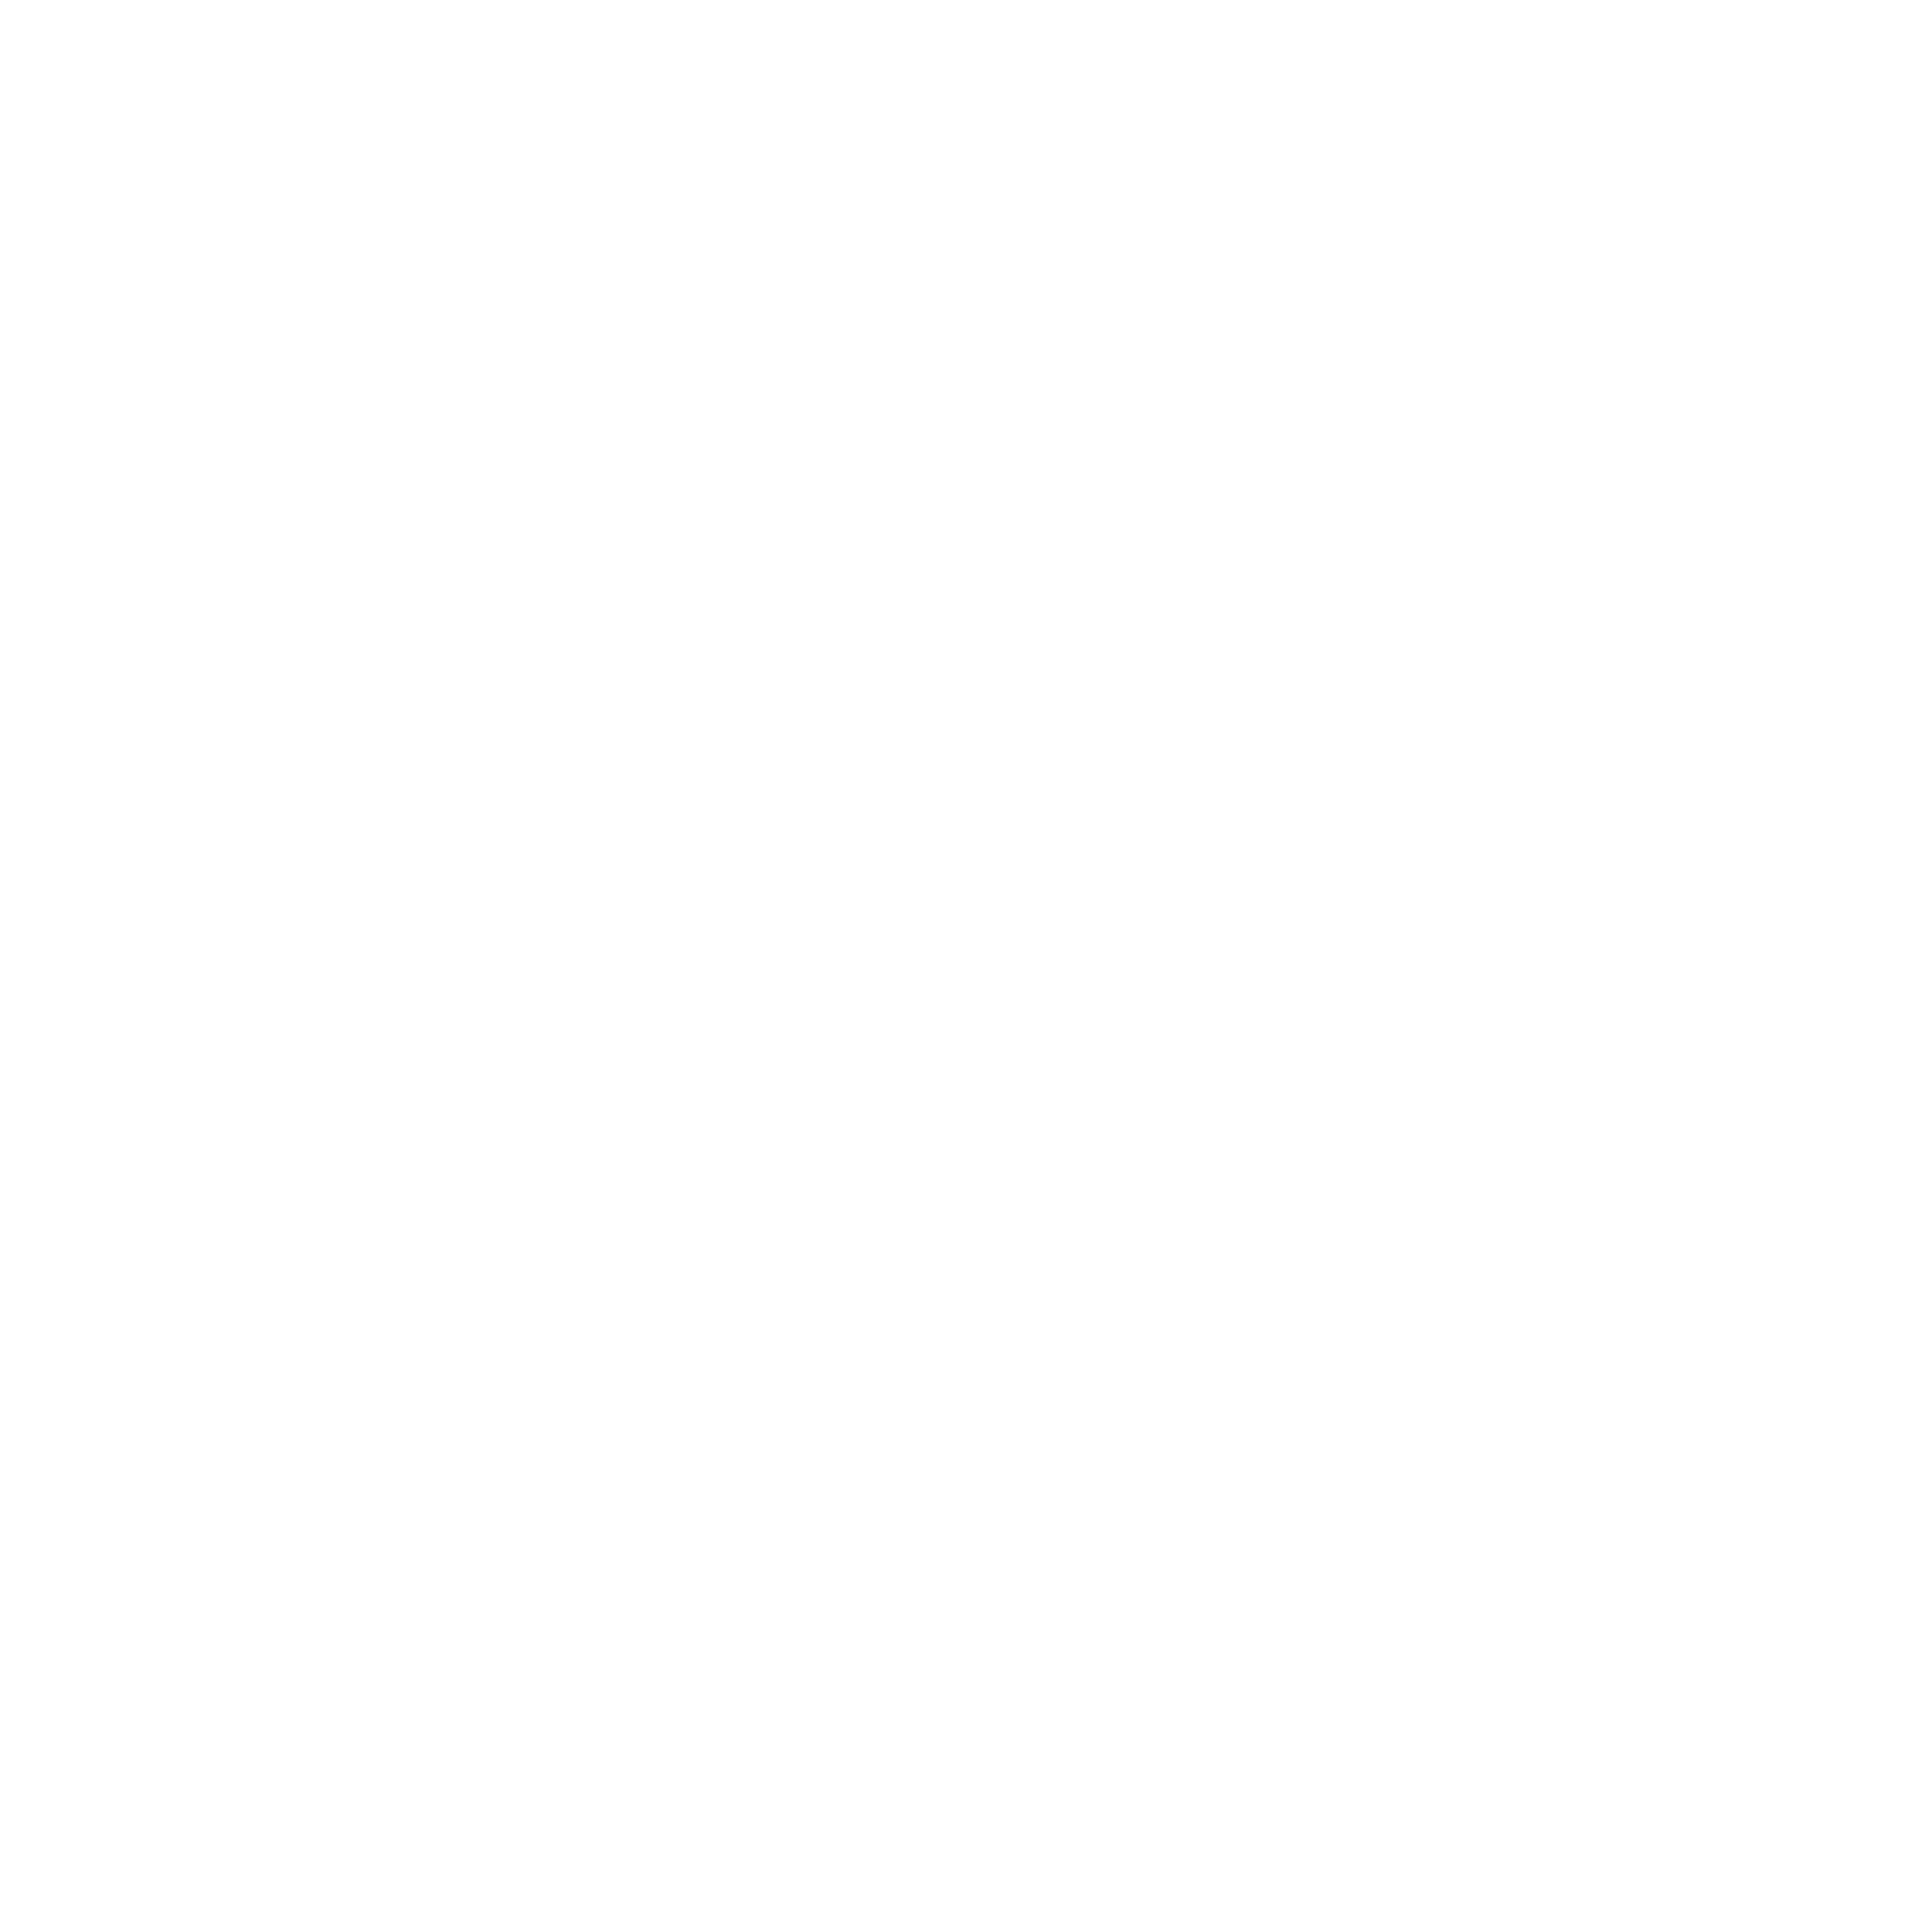 Windwos Microsoft Logo Weiss png Icon Symbol